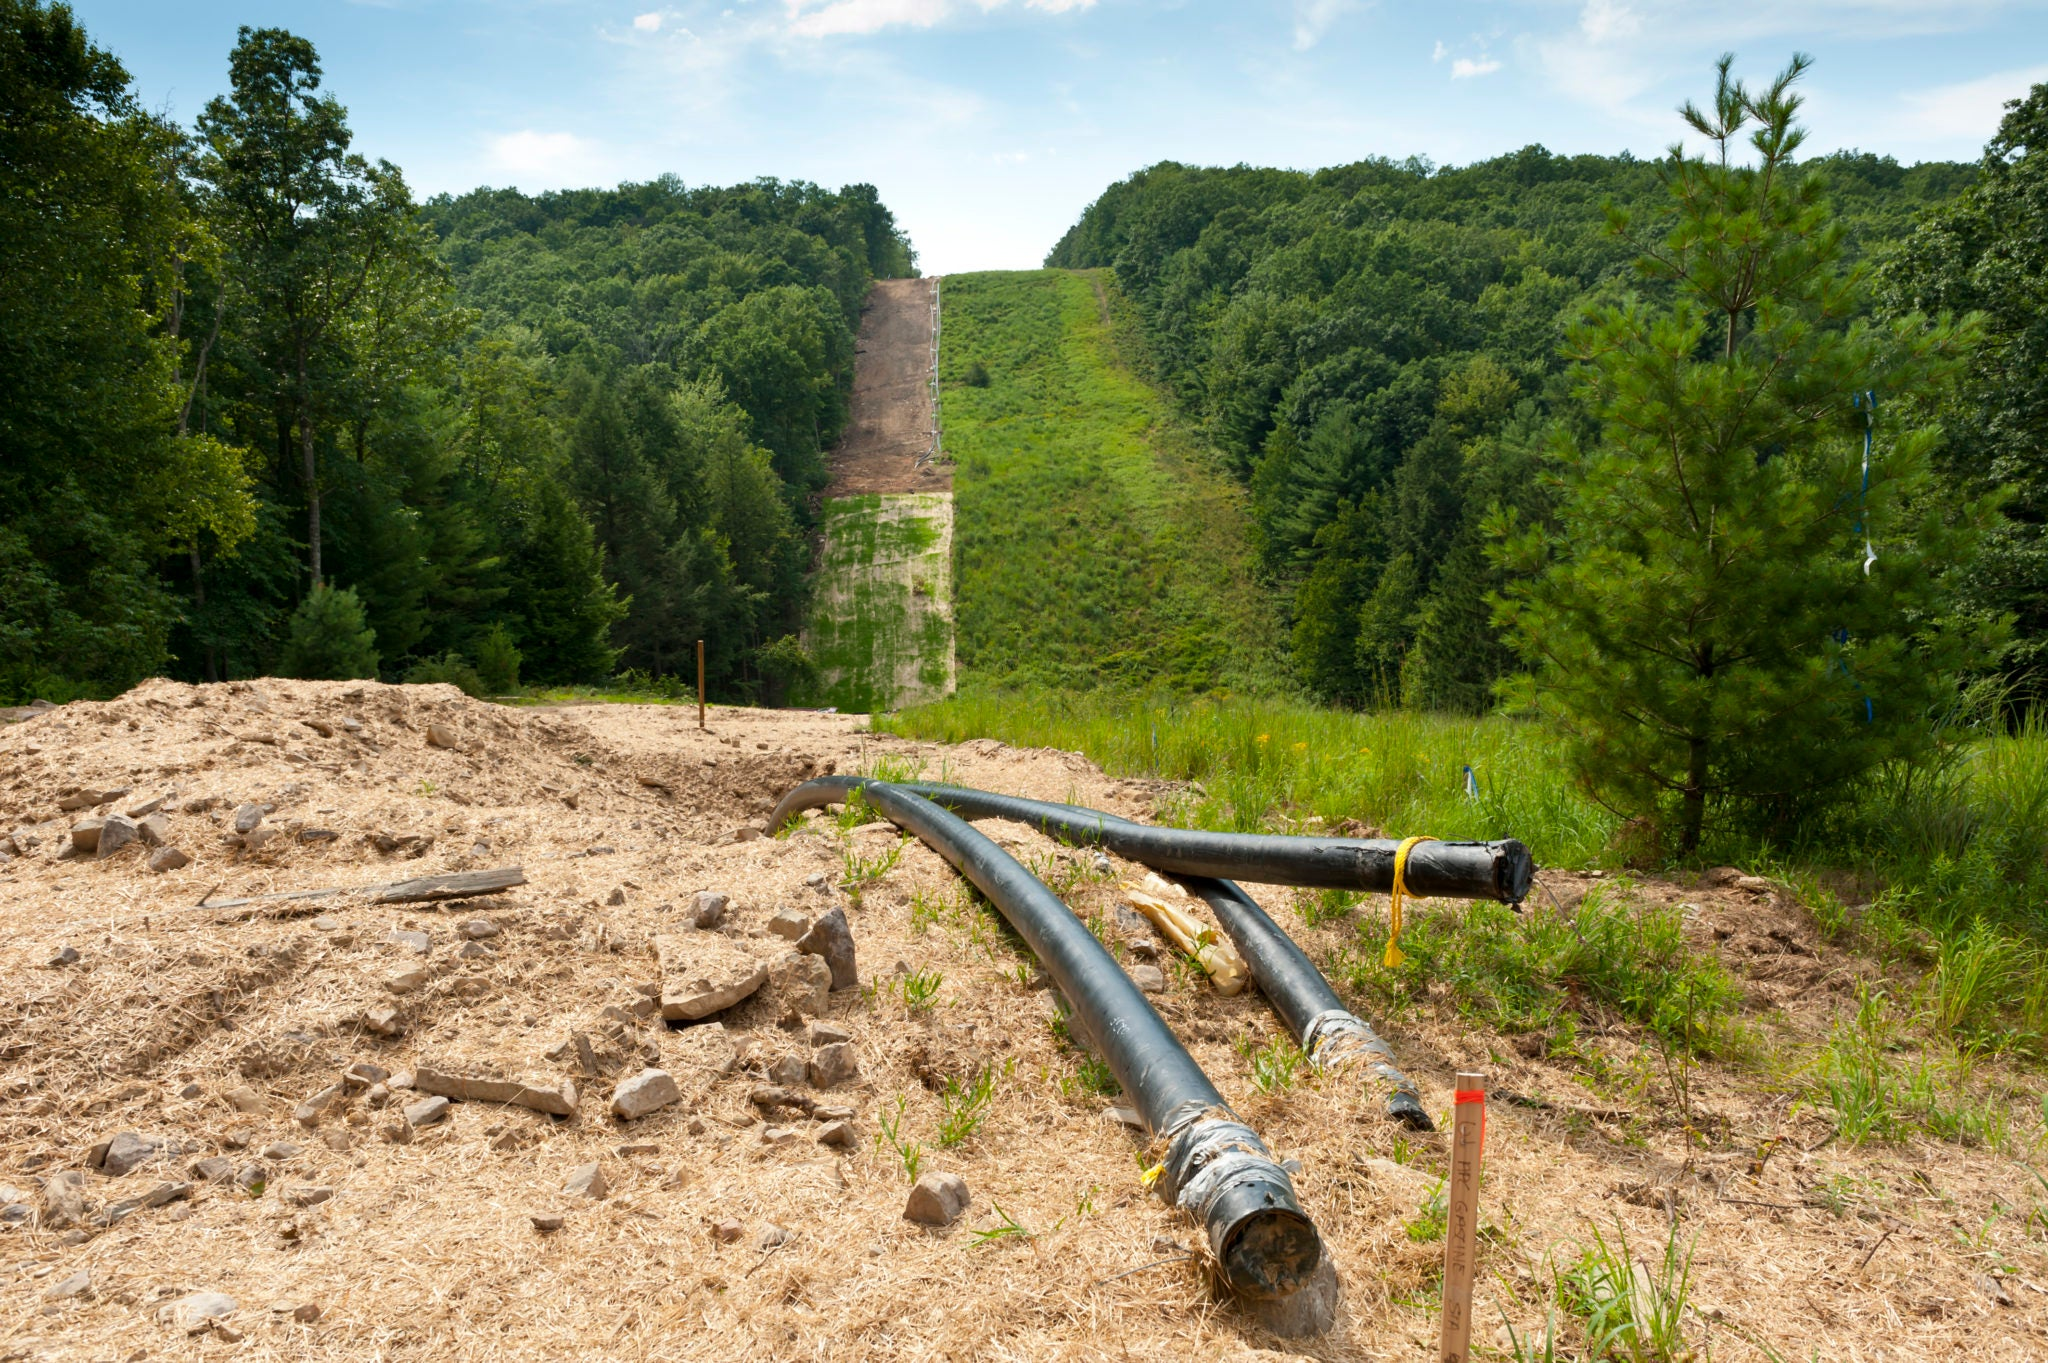 A gas pipeline under construction in a clear-cut strip of forest